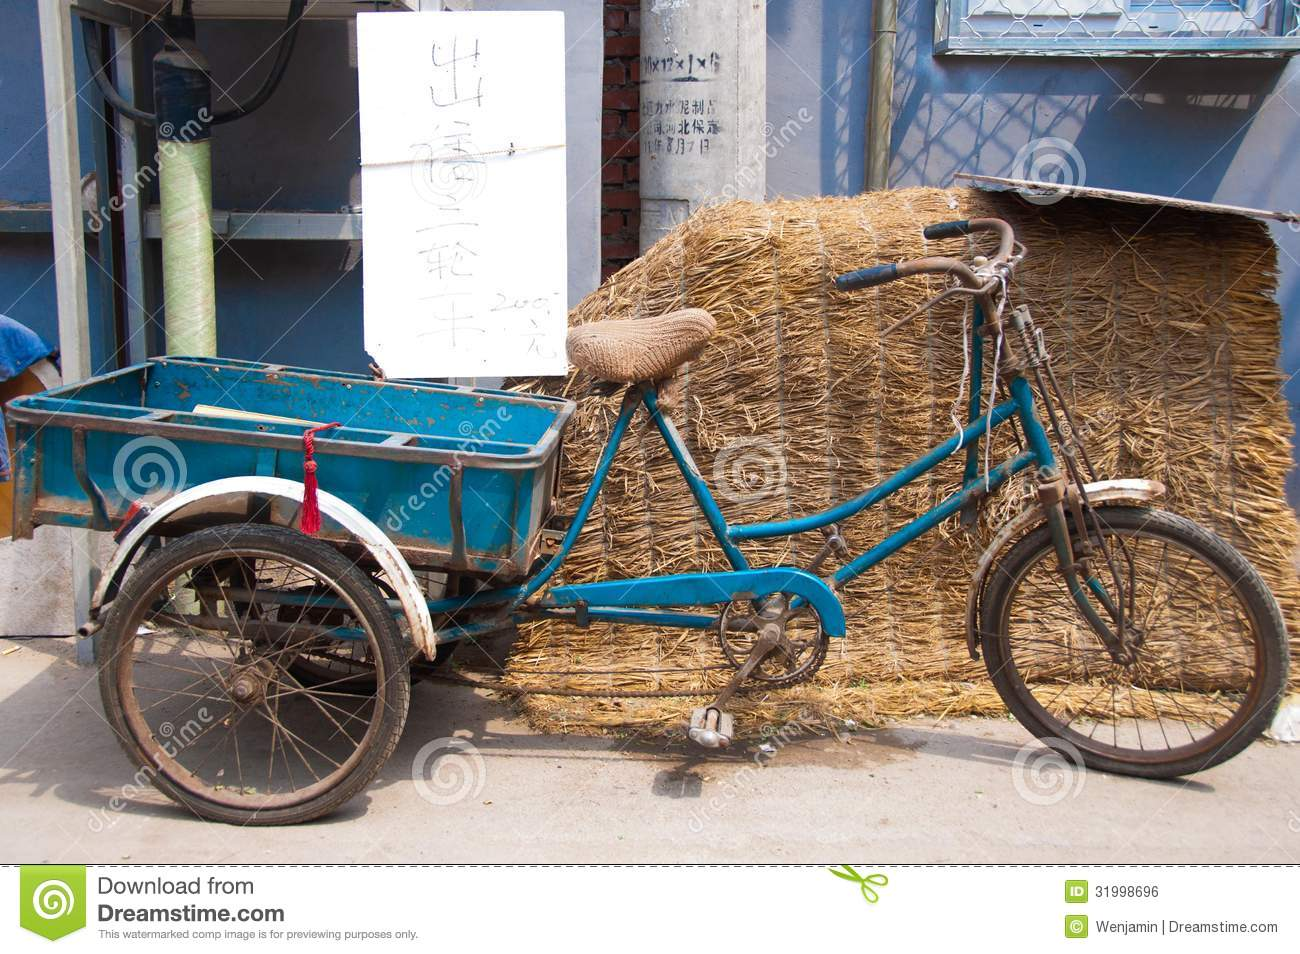 three wheeled bike for sale in an alley in beijing royalty free stock image image 31998696. Black Bedroom Furniture Sets. Home Design Ideas